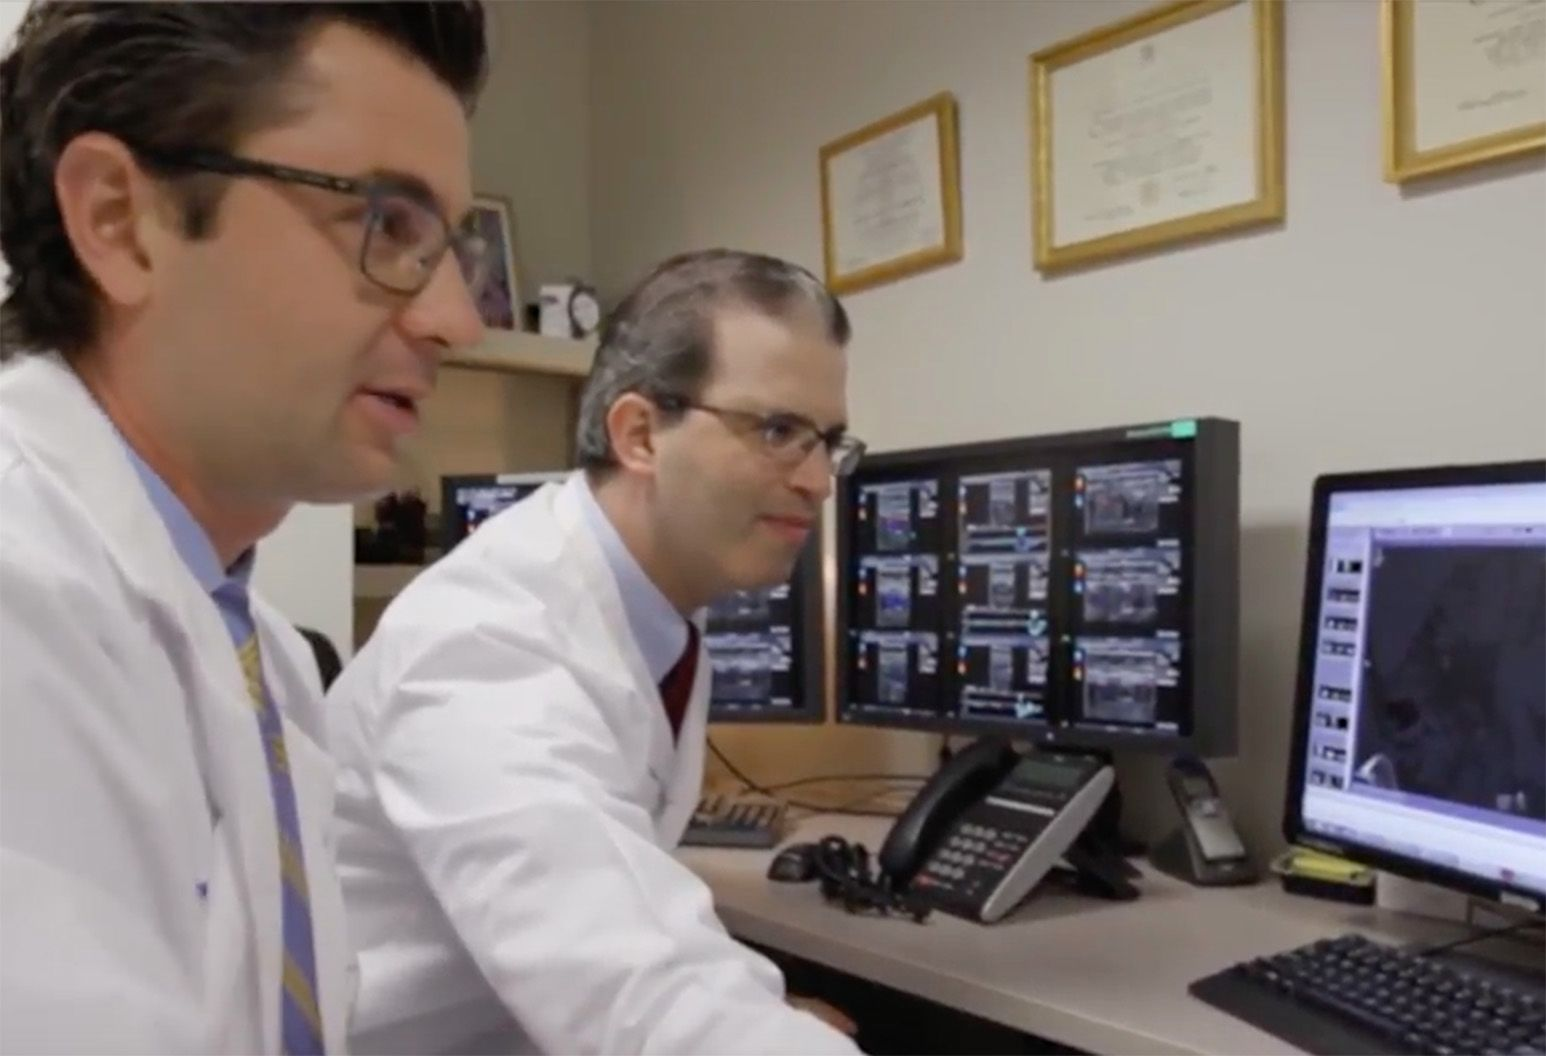 Two male doctors in white coats and glasses observe a computer screen.